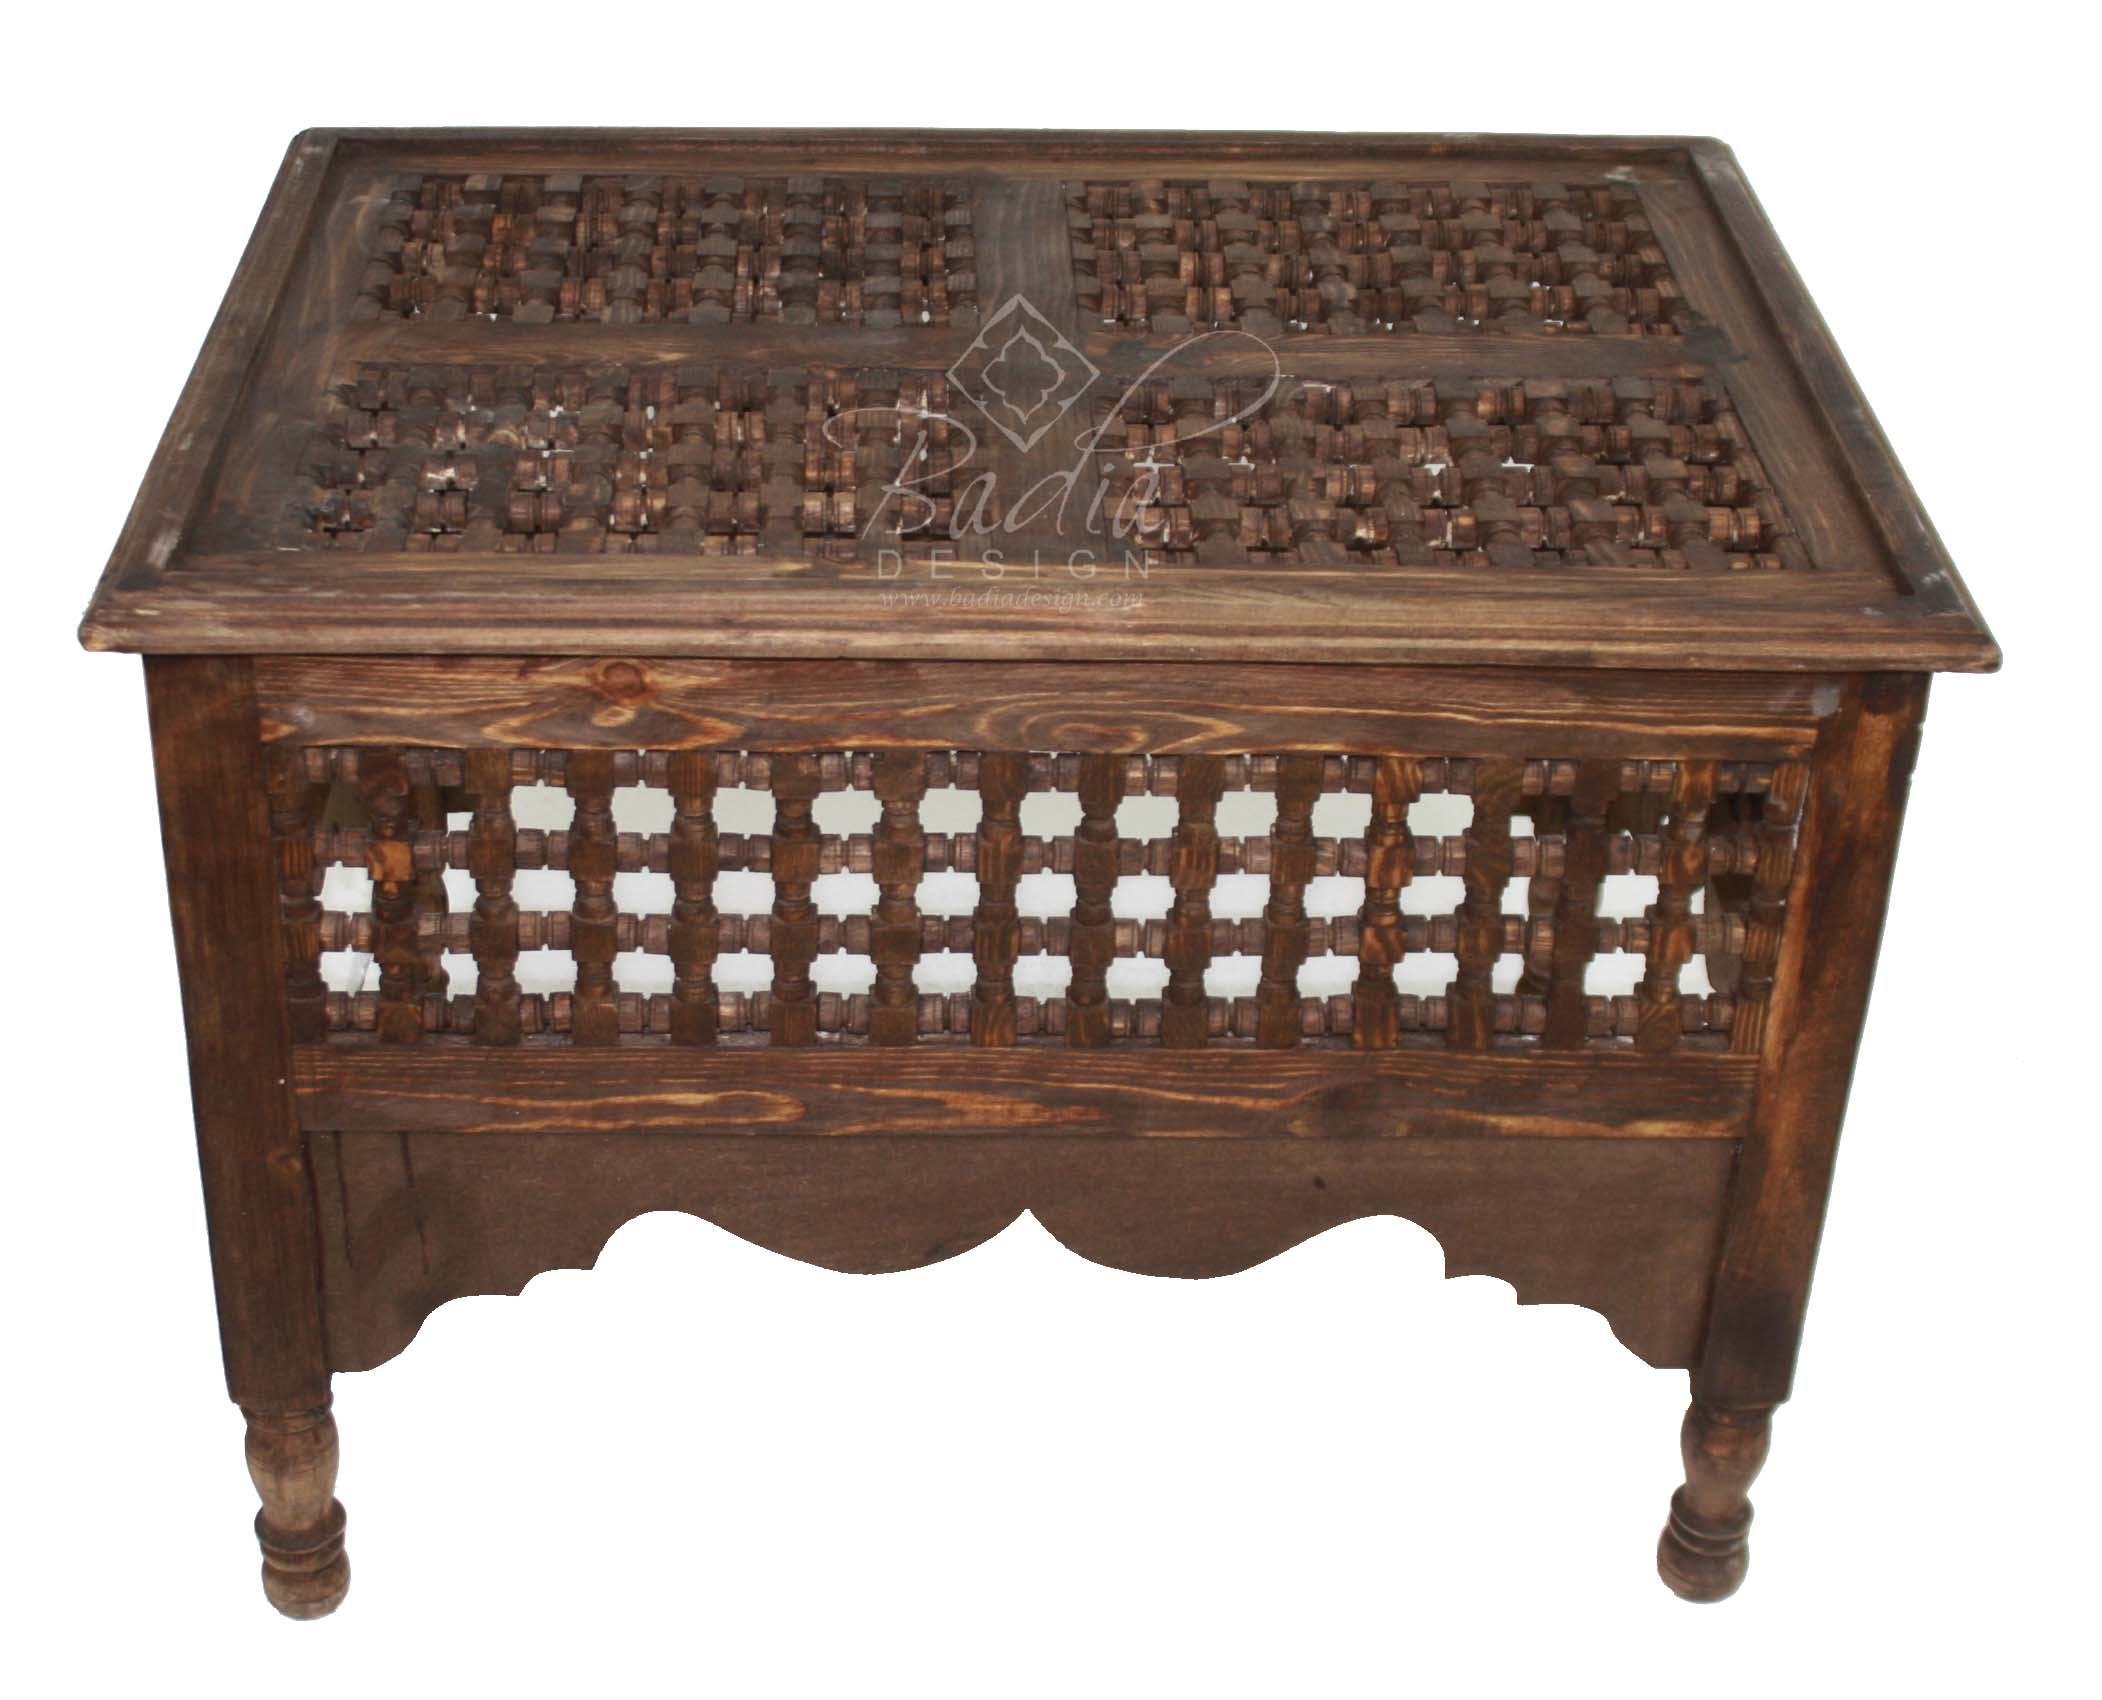 moroccan-square-wooden-moucharabieh-coffee-table-cw-st055.jpg